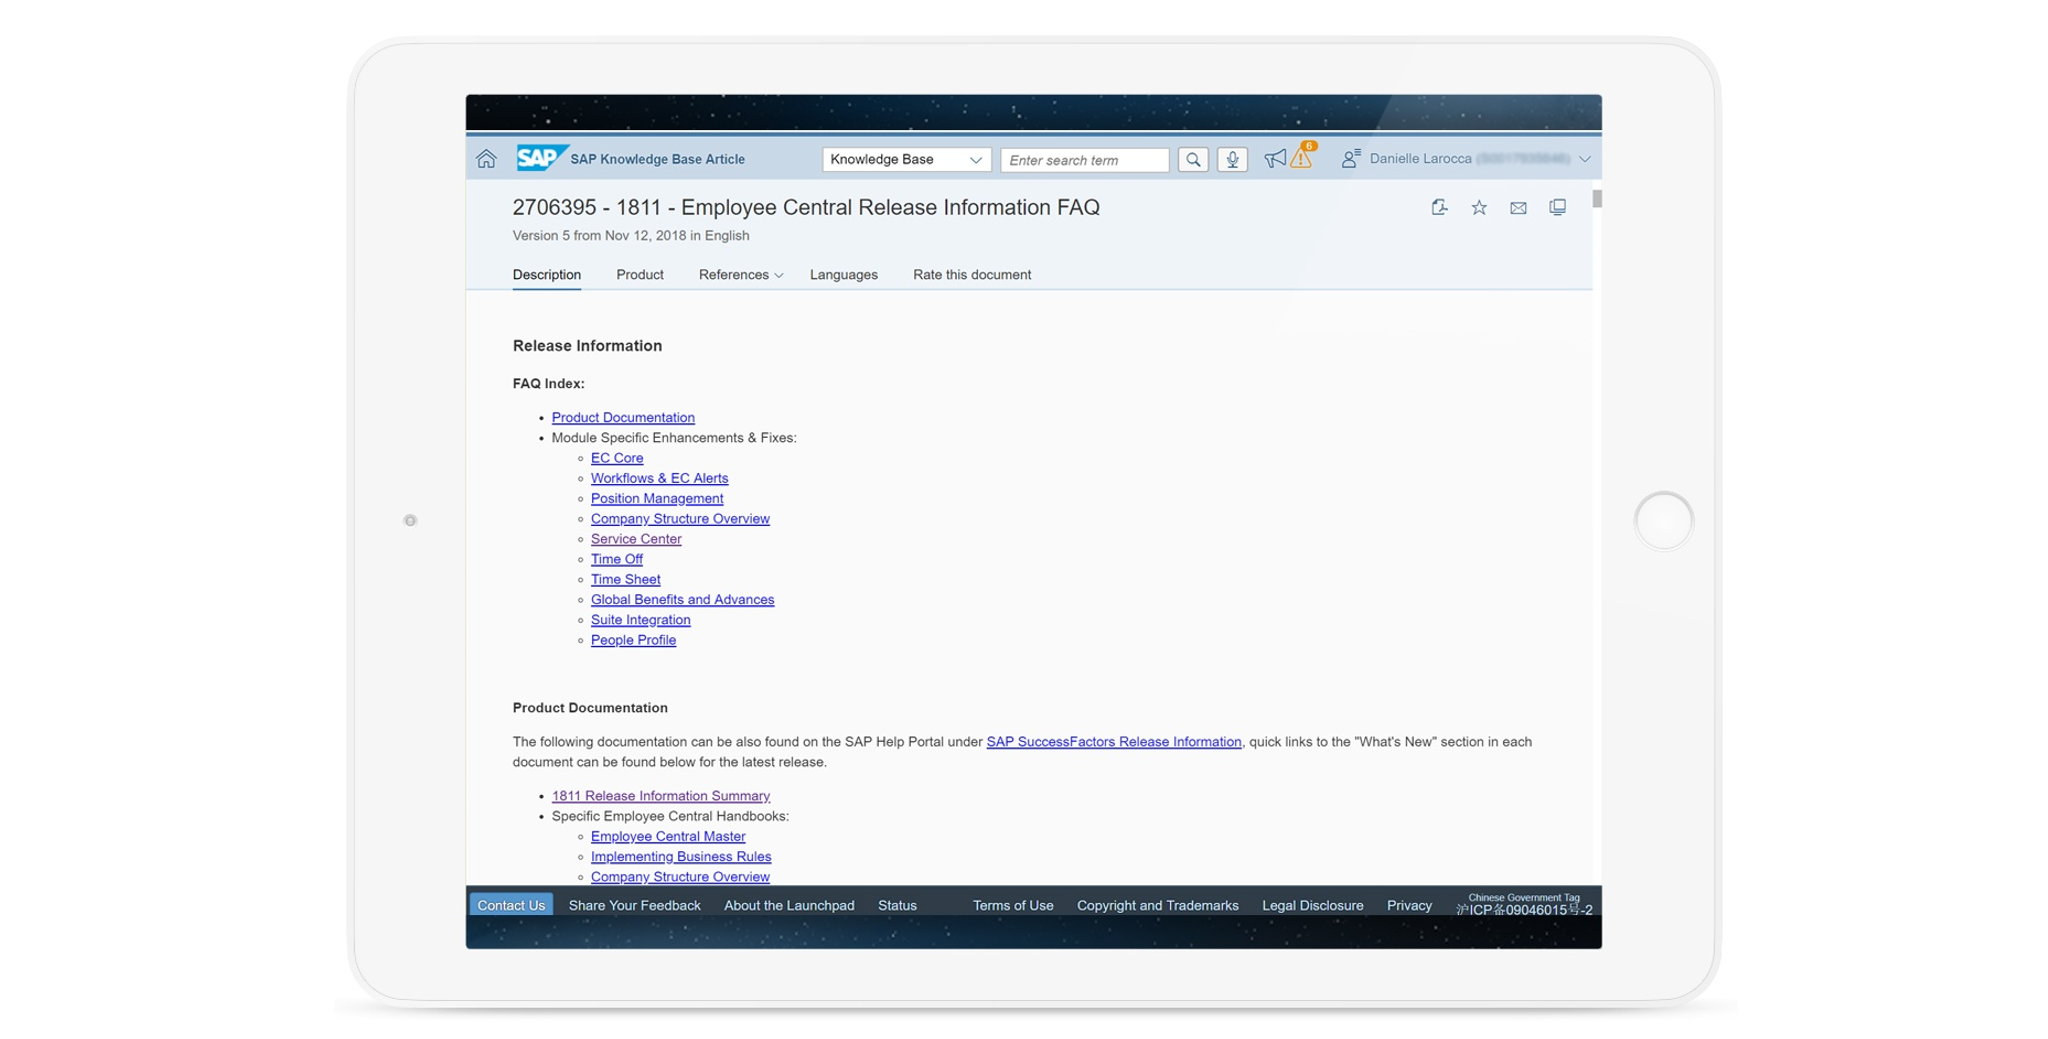 Accessing SAP SuccessFactors Knowledge Base Articles